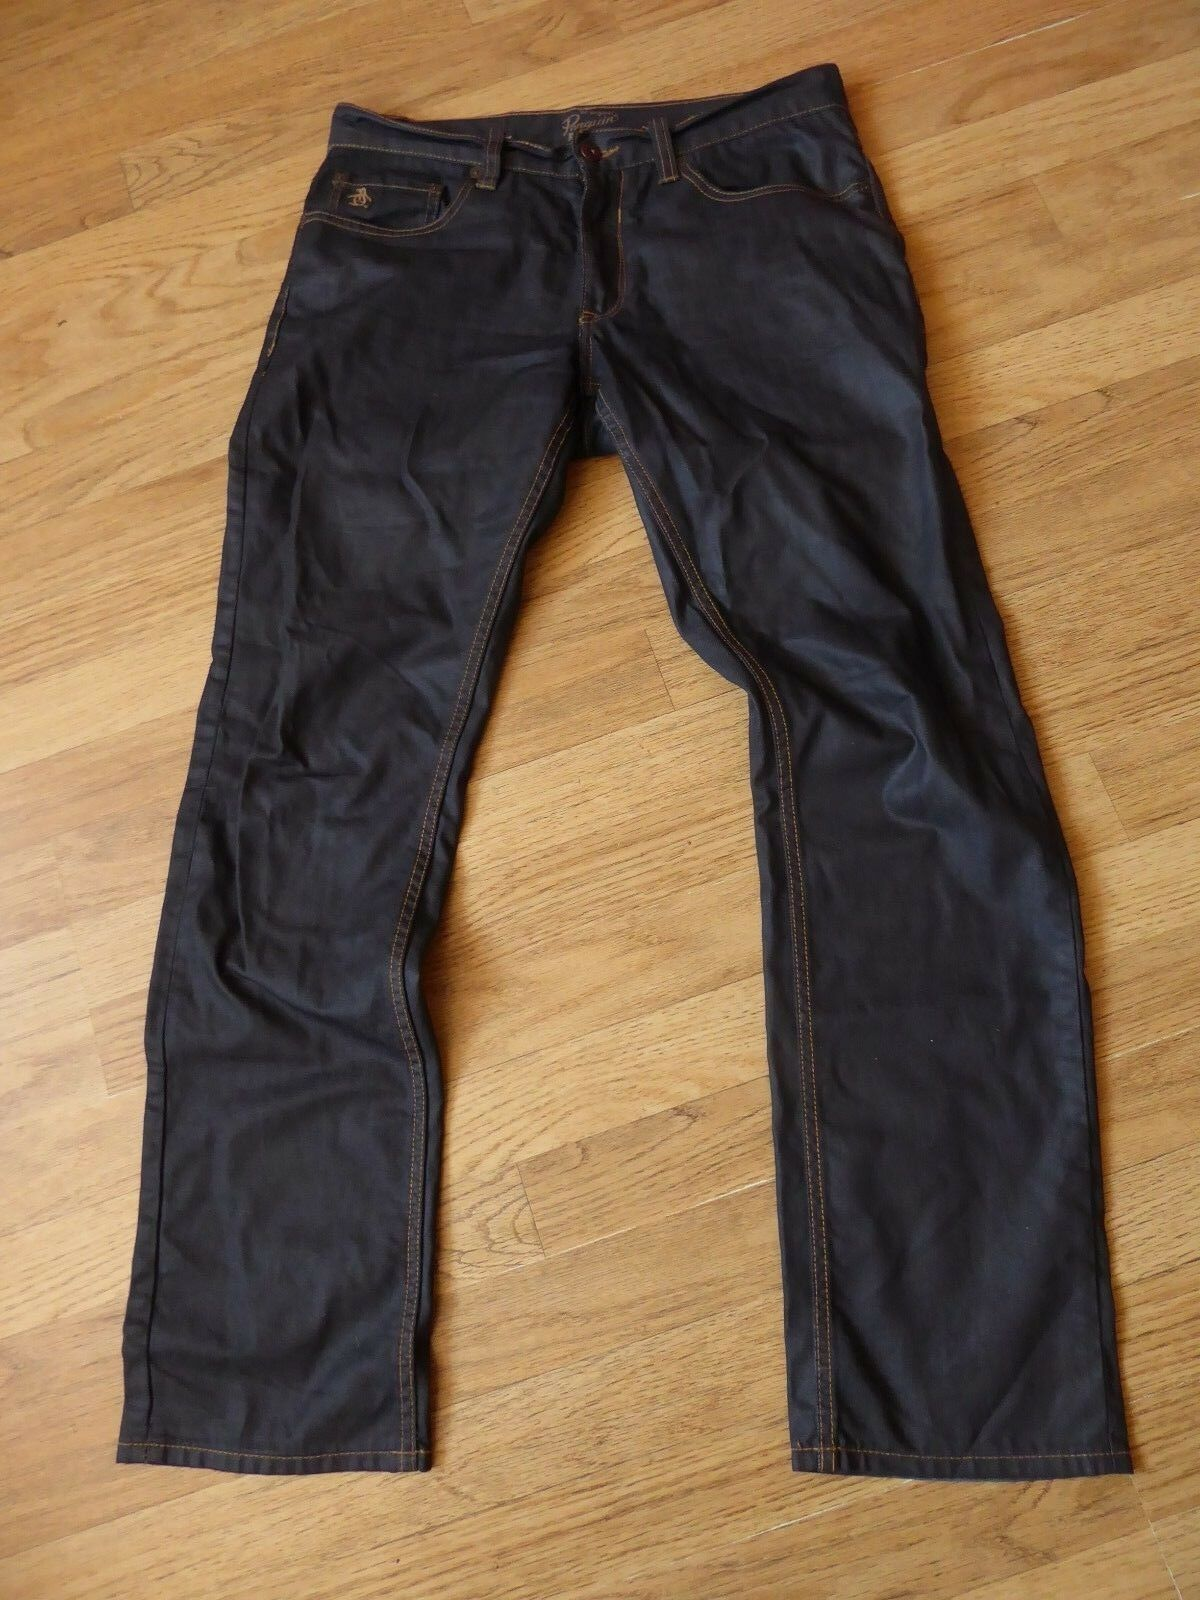 Mens PENGUIN jeans - size 32 32 great condition